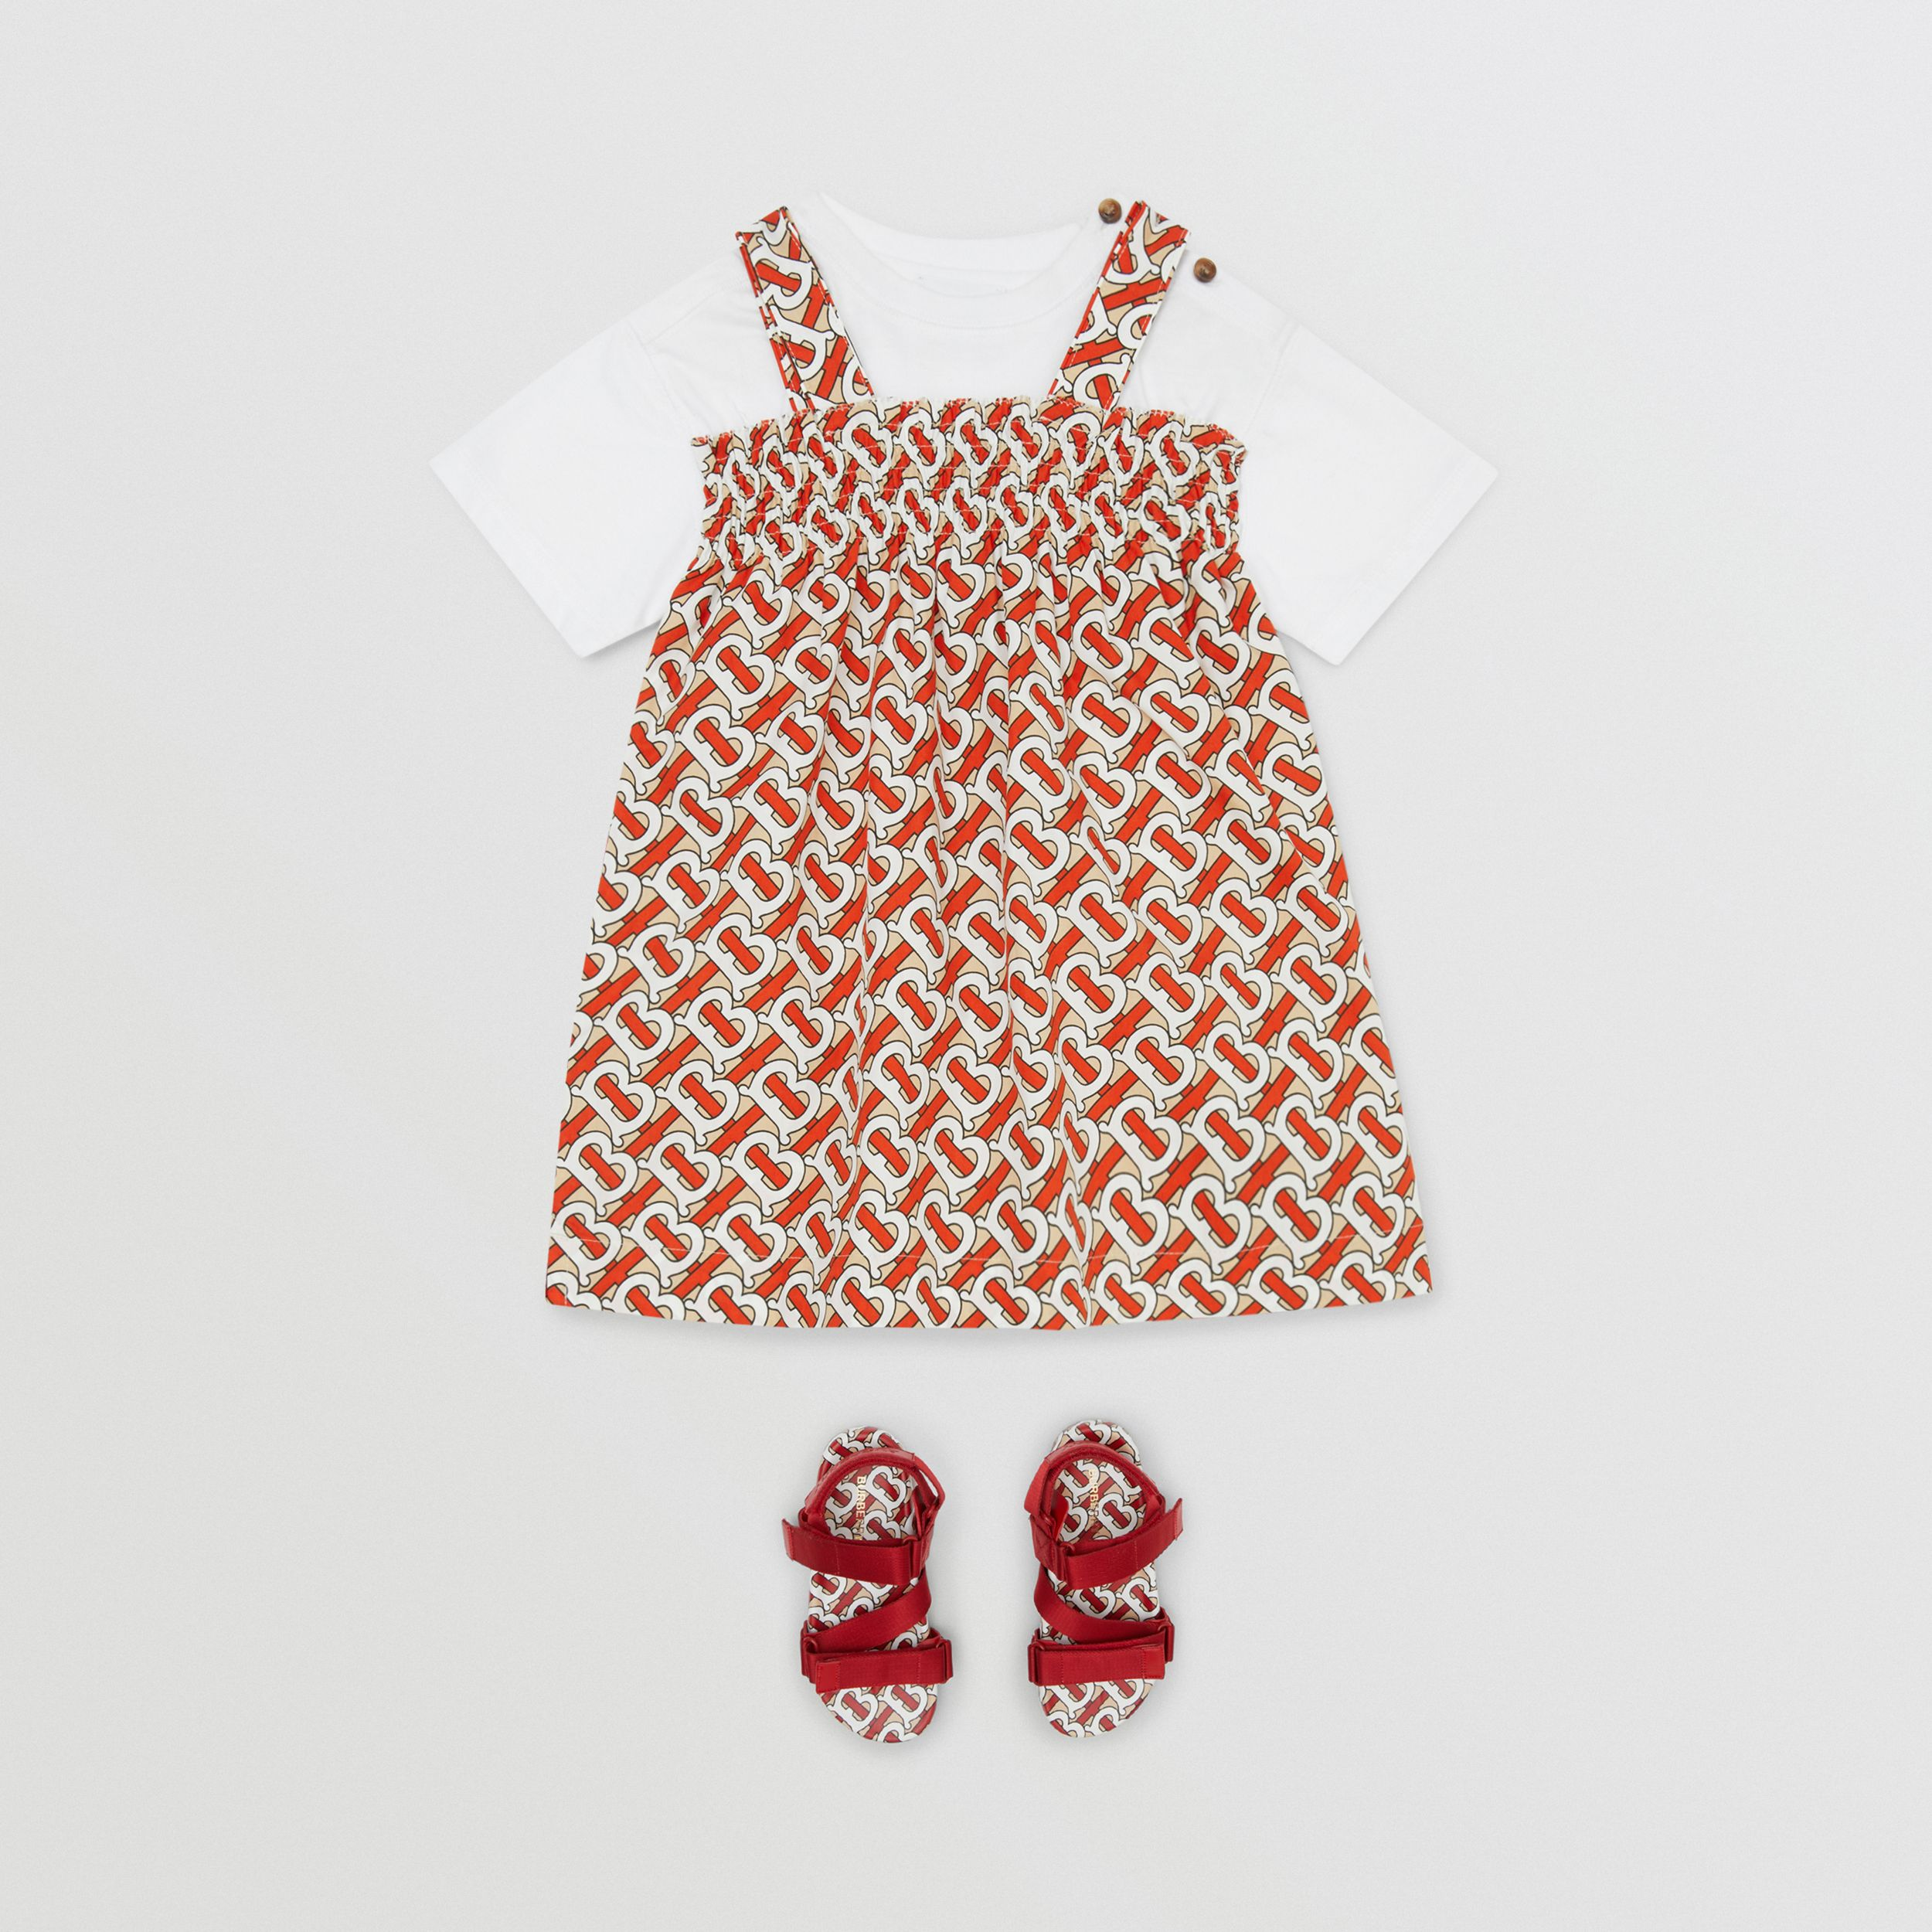 Smocked Monogram Print Cotton Poplin Dress in Vermilion Red - Children | Burberry - 3